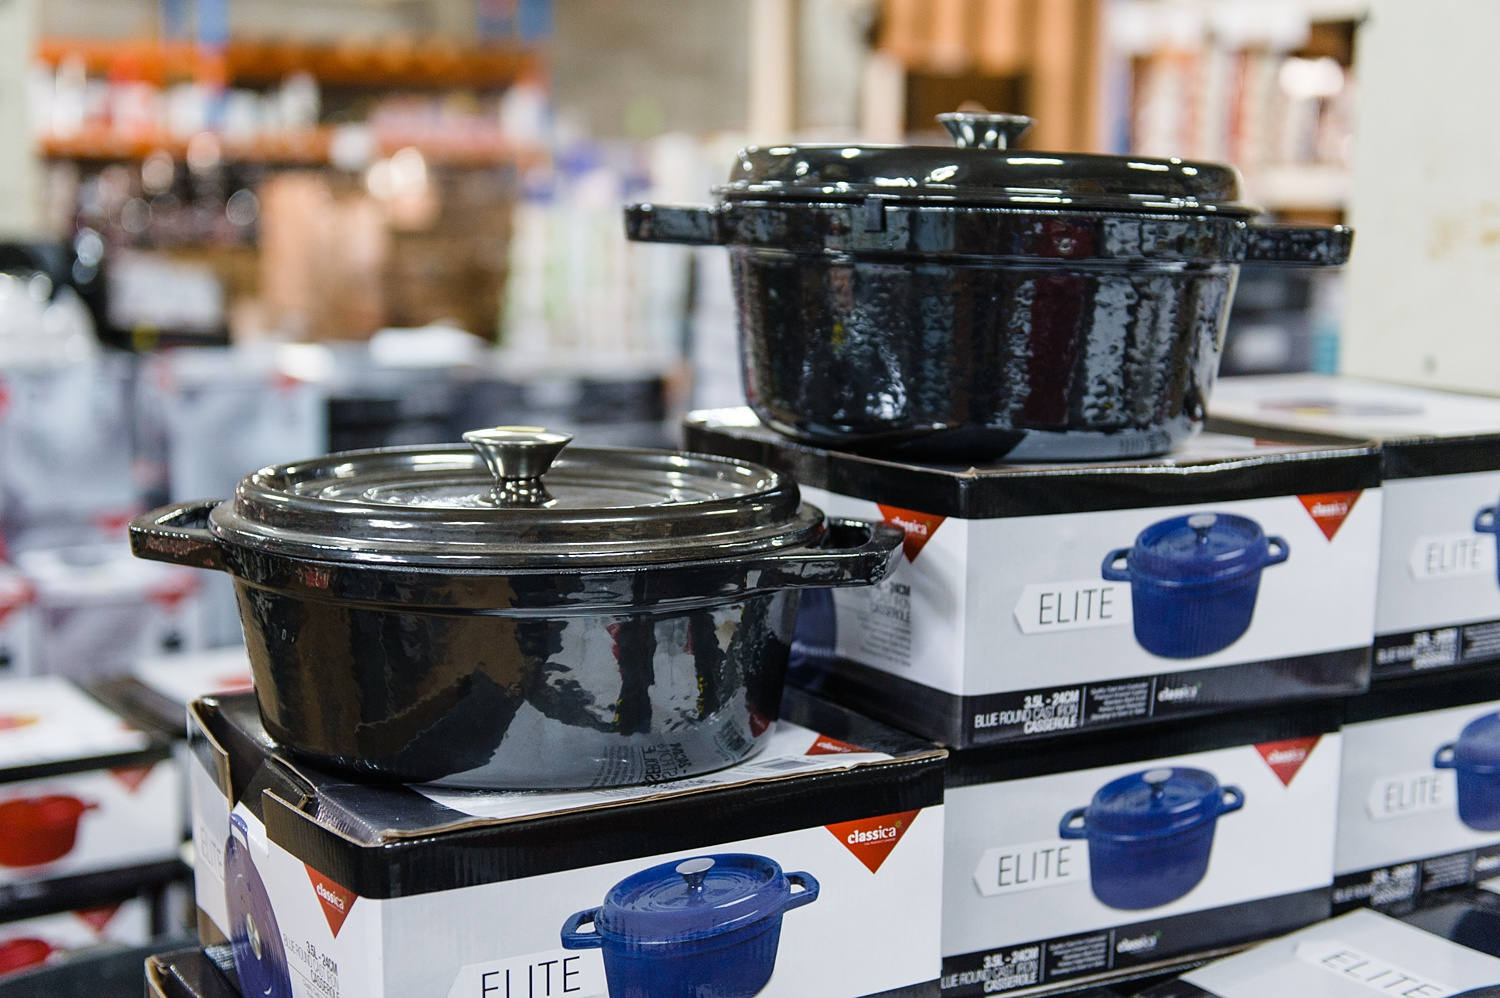 Gold Coast Kitchenware Huge Cookware And Kitchenware Warehouse Sale Up To 85 Off